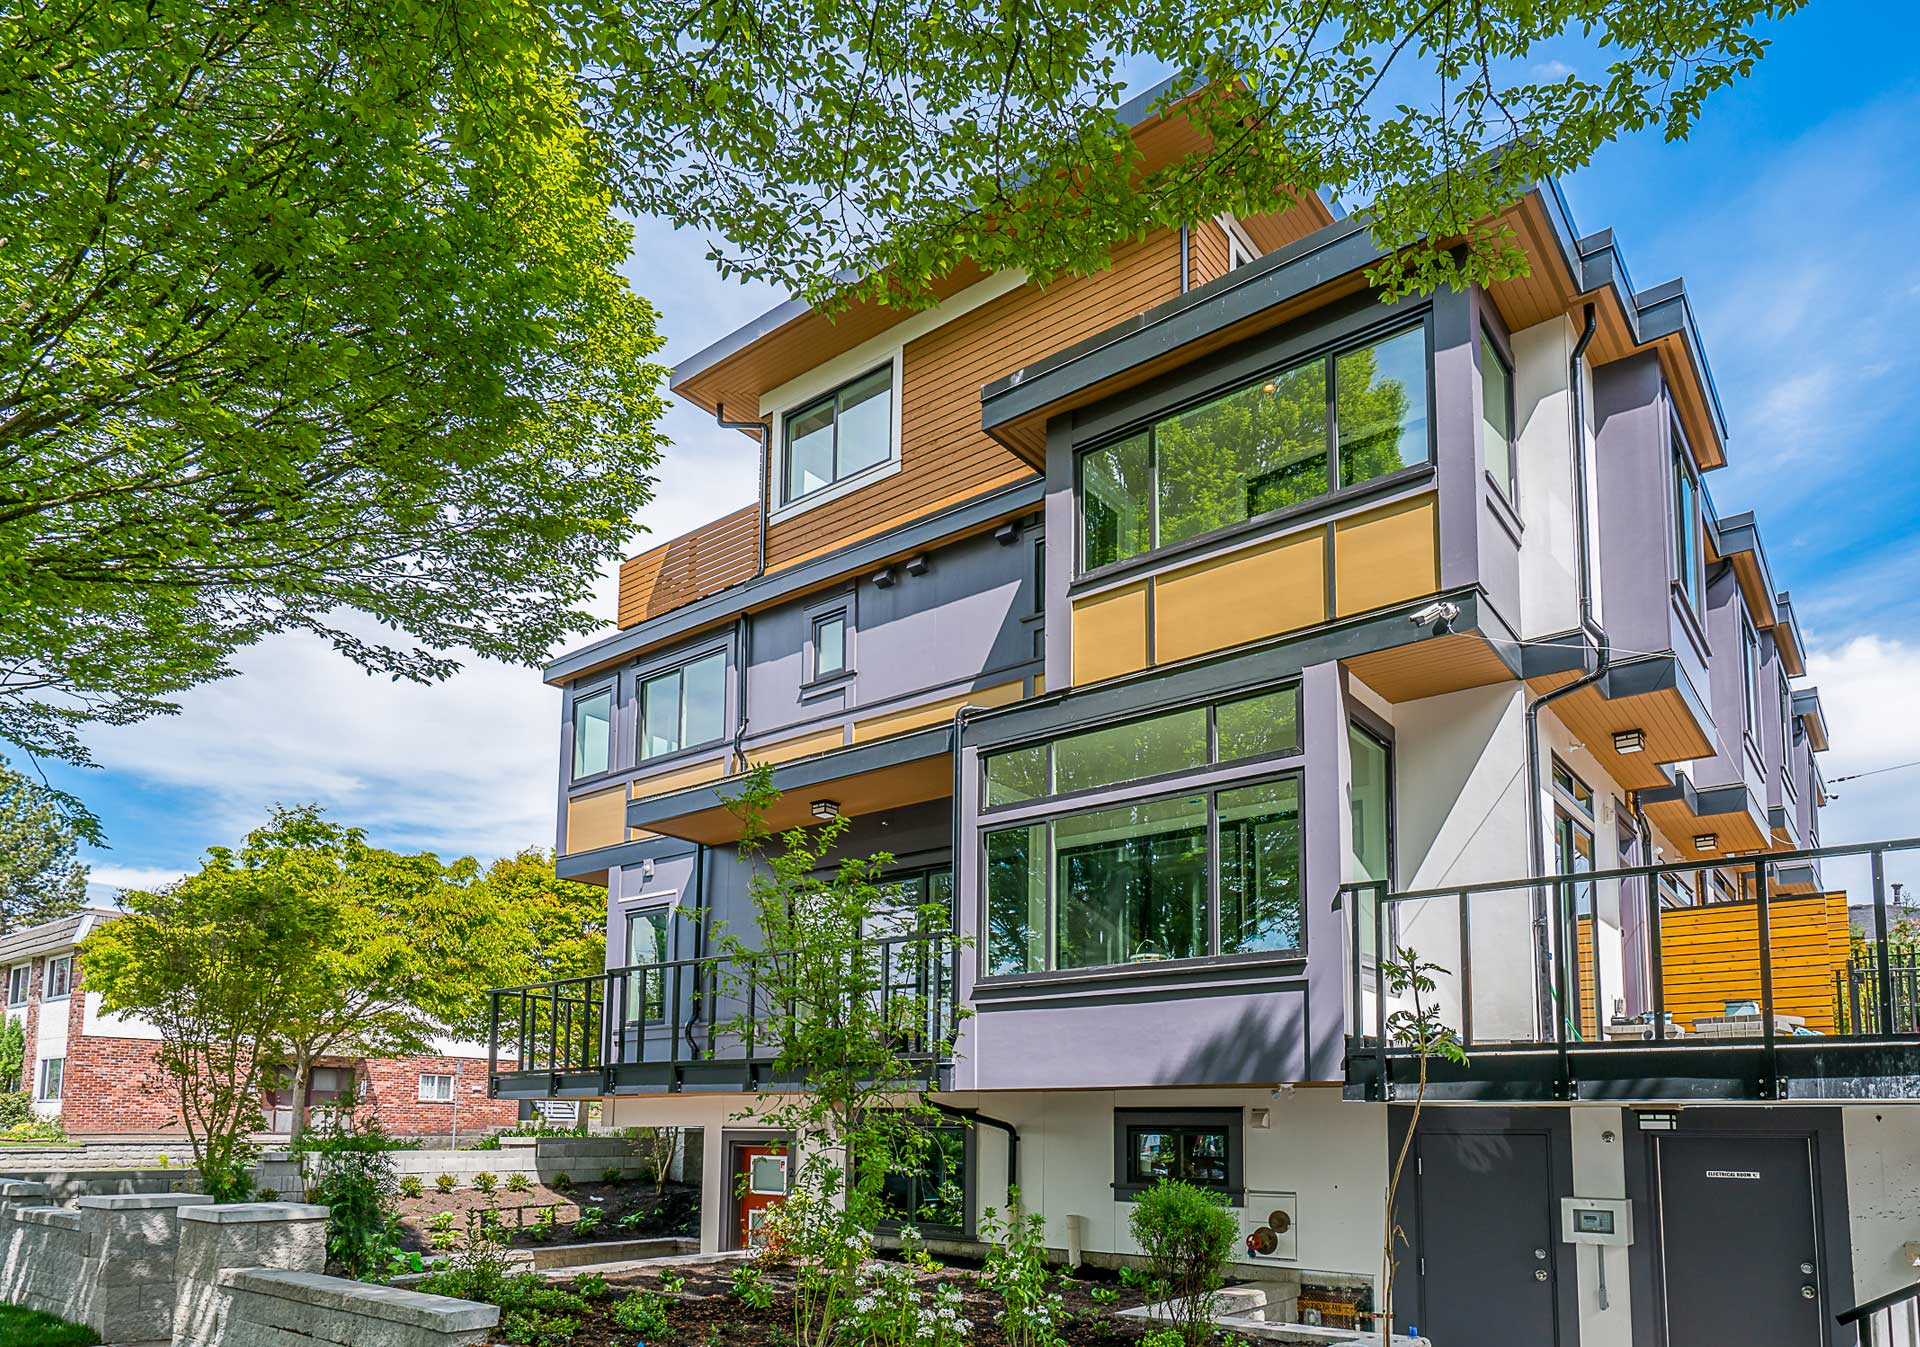 Nanaimo West:6 Luxury Townhomes - Open House: Saturday, September 1, 2018 - 2-4pm